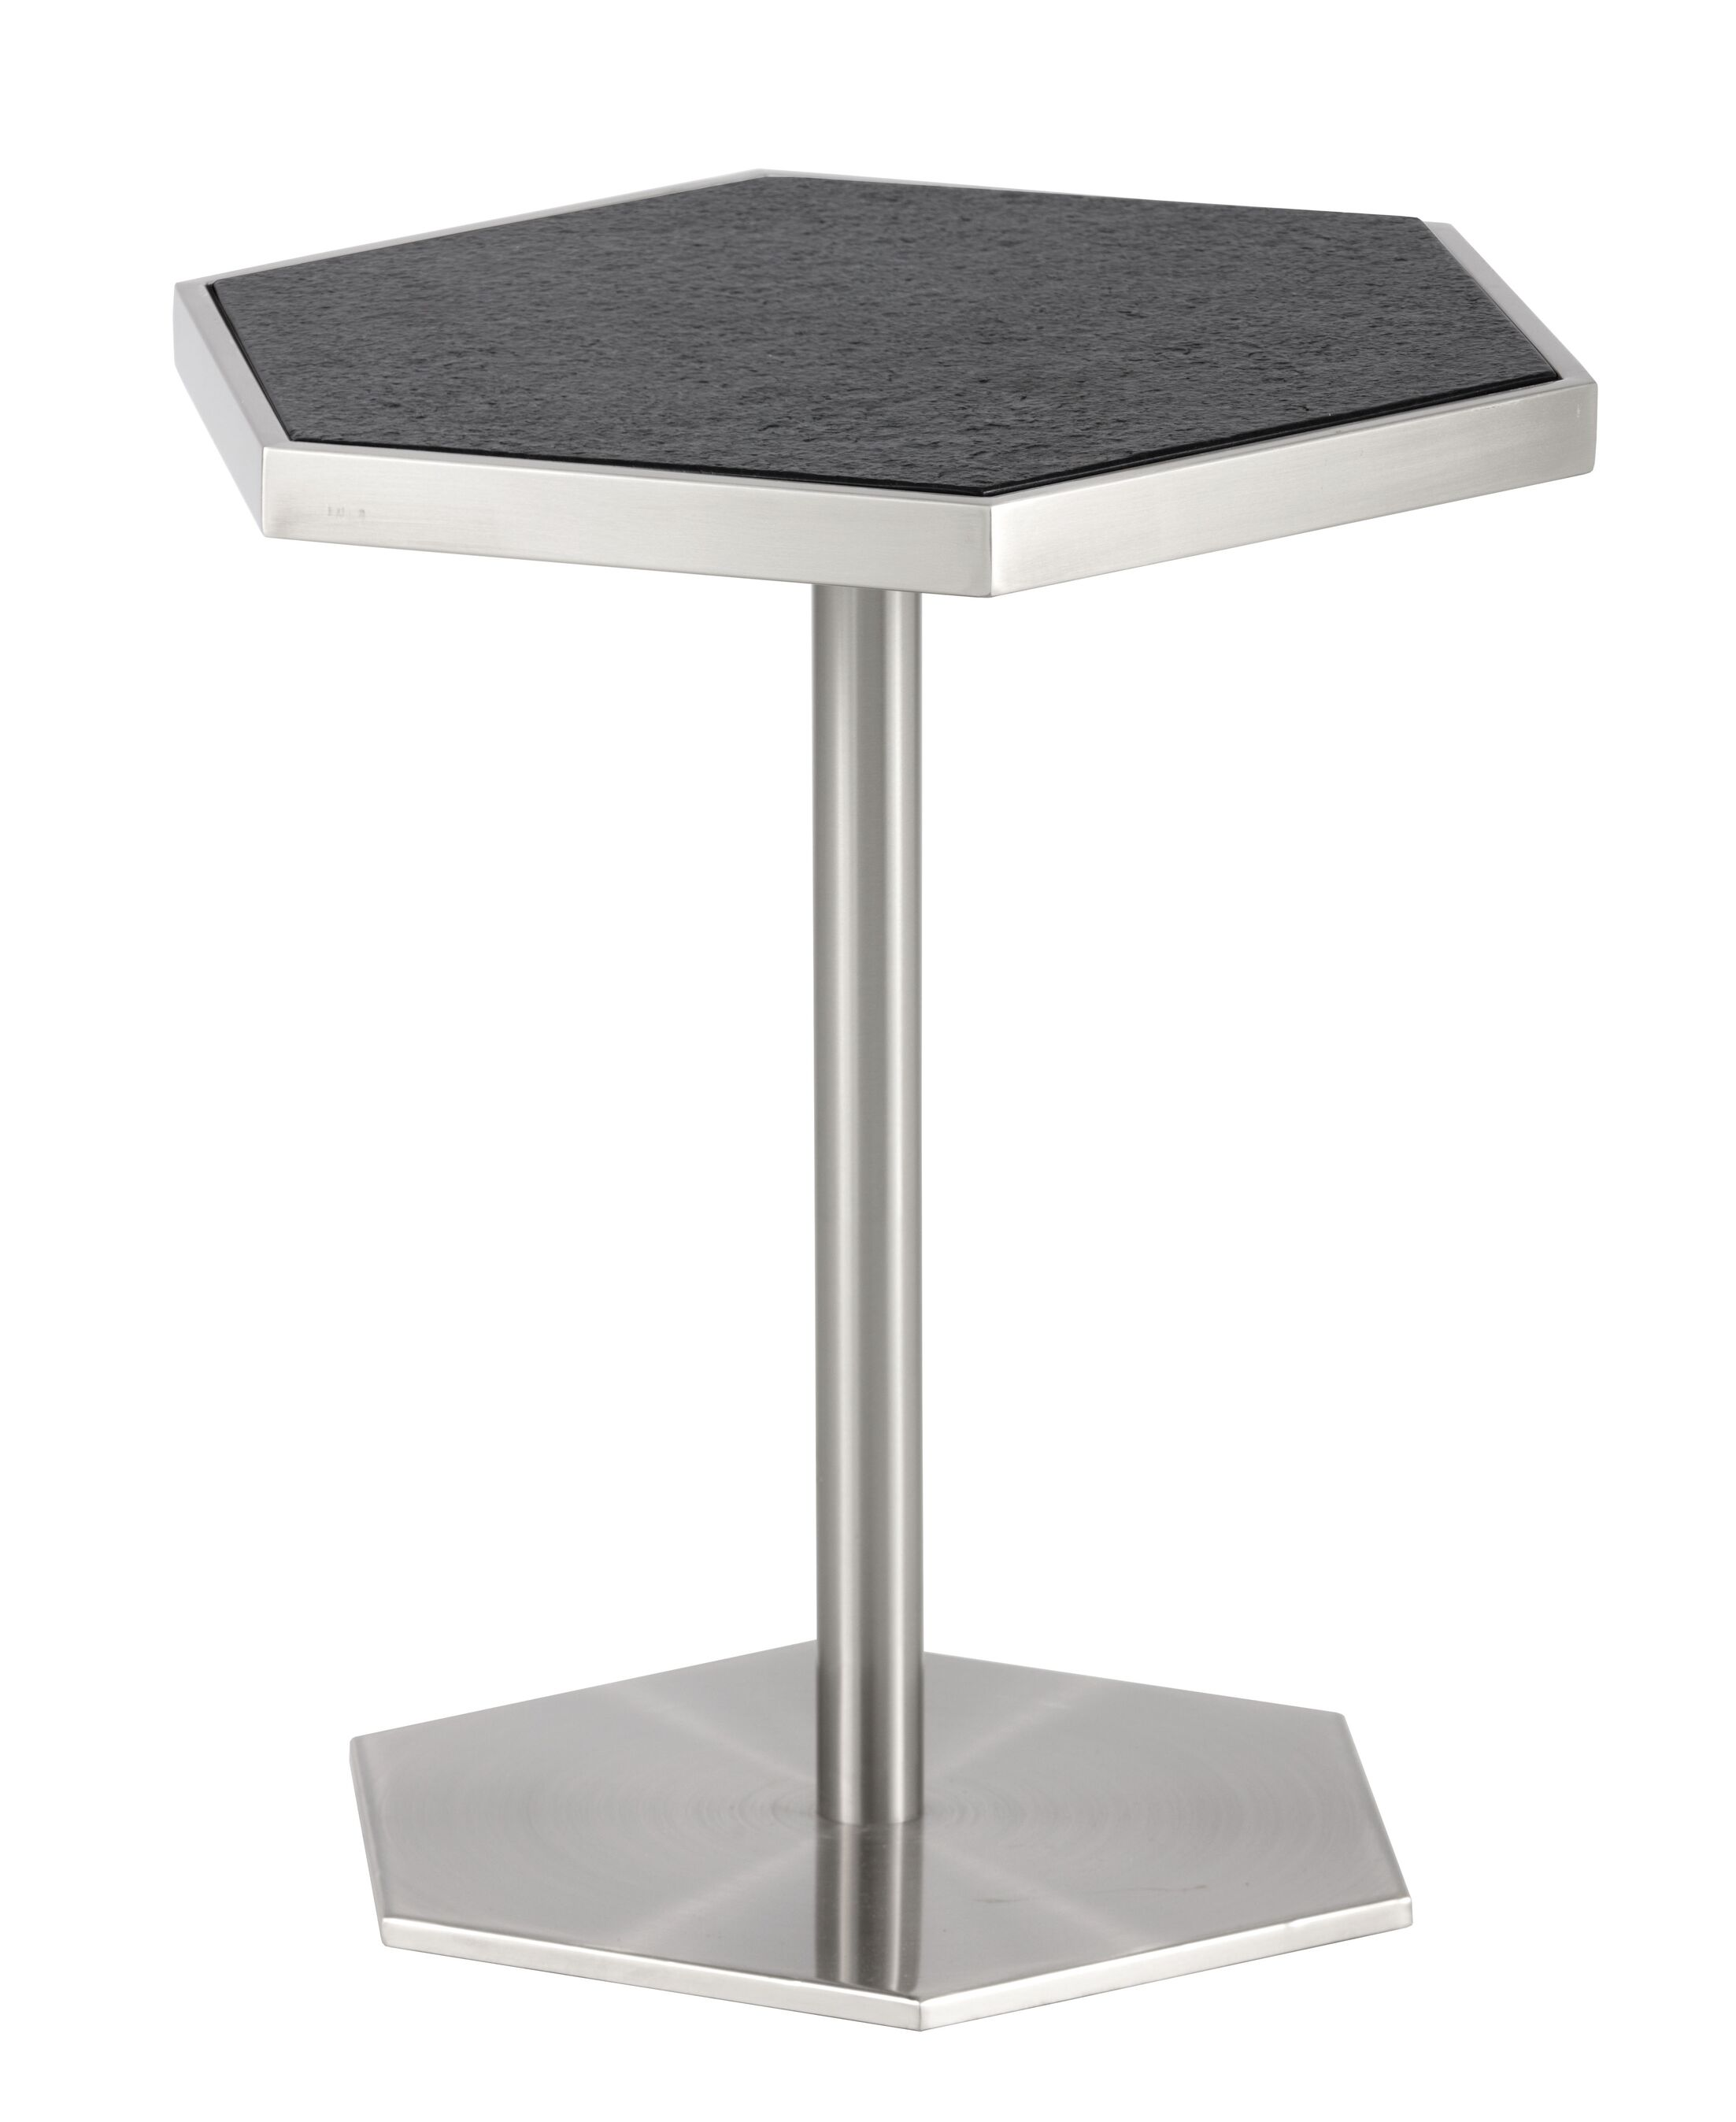 Ikon End Table Table Base Color: Stainless Steel